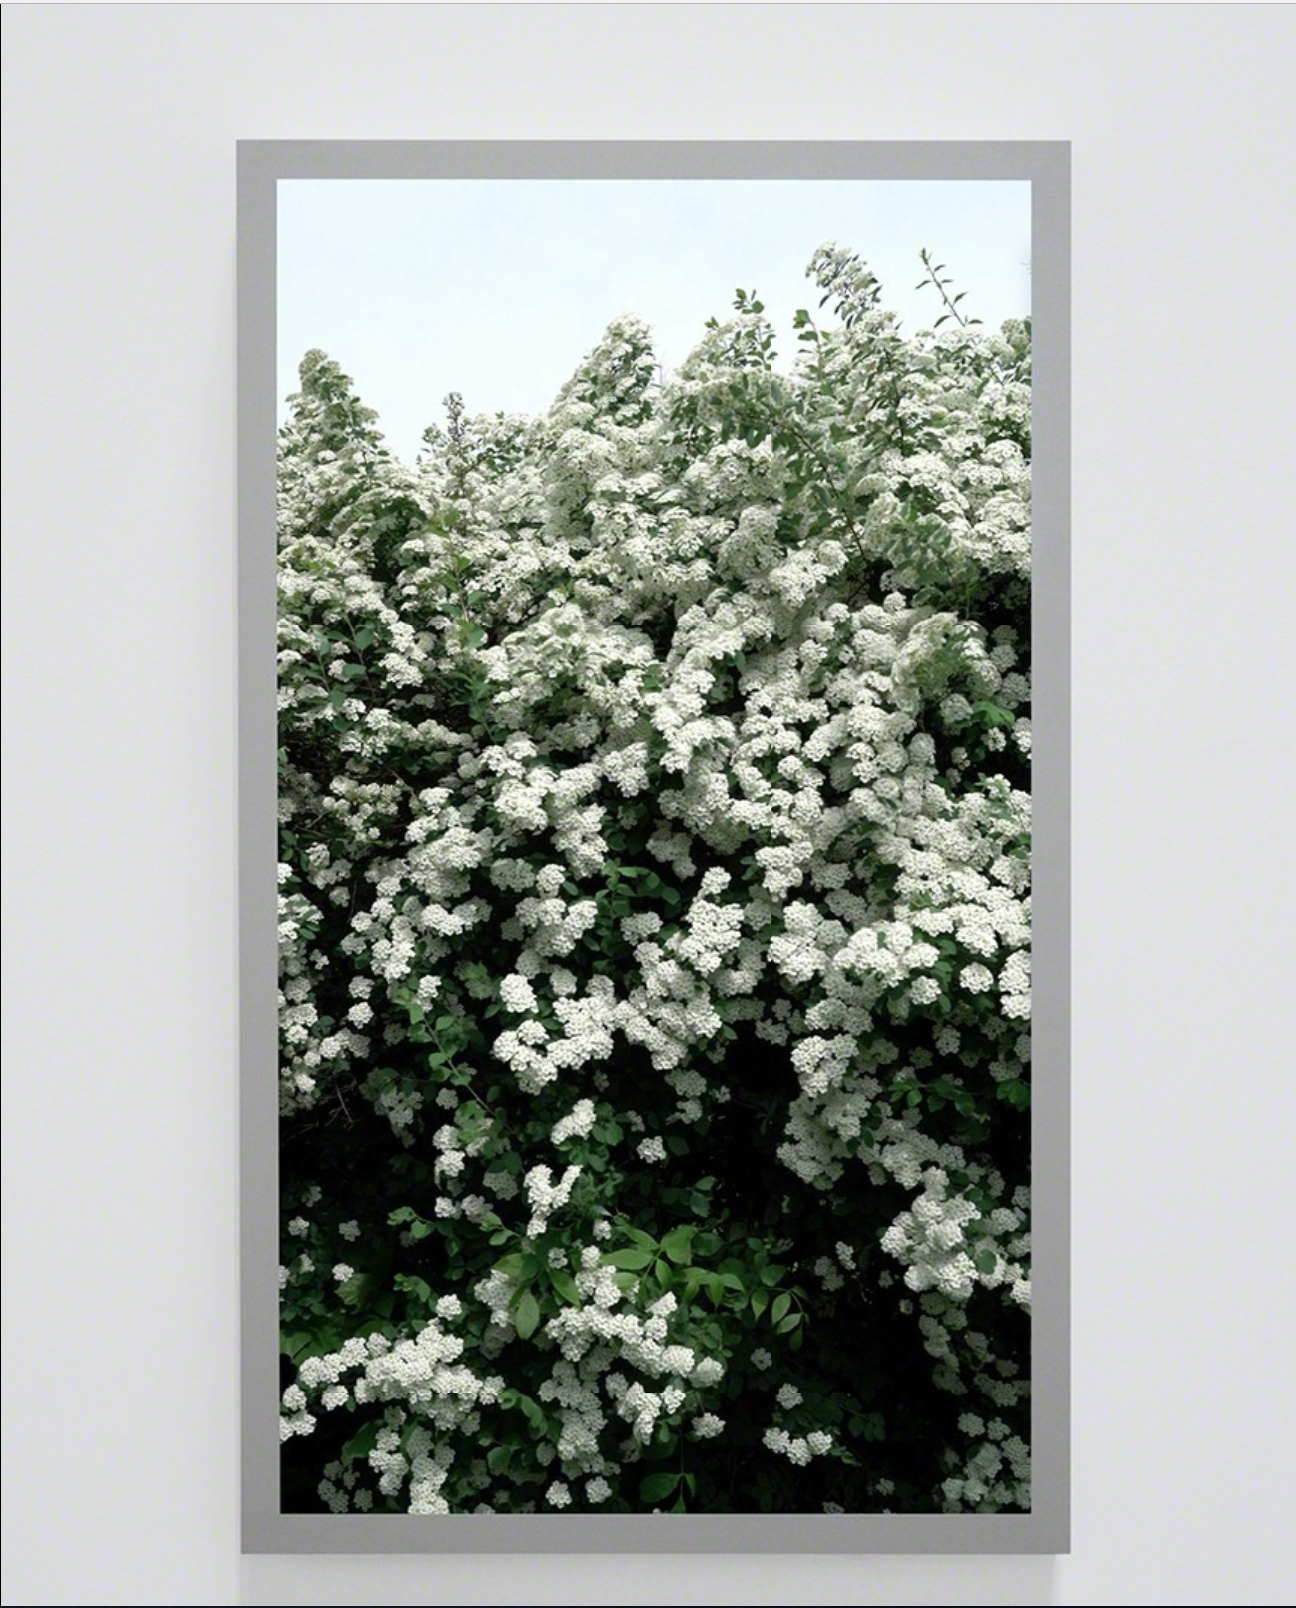 Spirea prunifolia, Bridal Wreath (Back and Forth Picture) , Ed 1/4, 2016, Vidéo sur moniteur 4K ultra HD